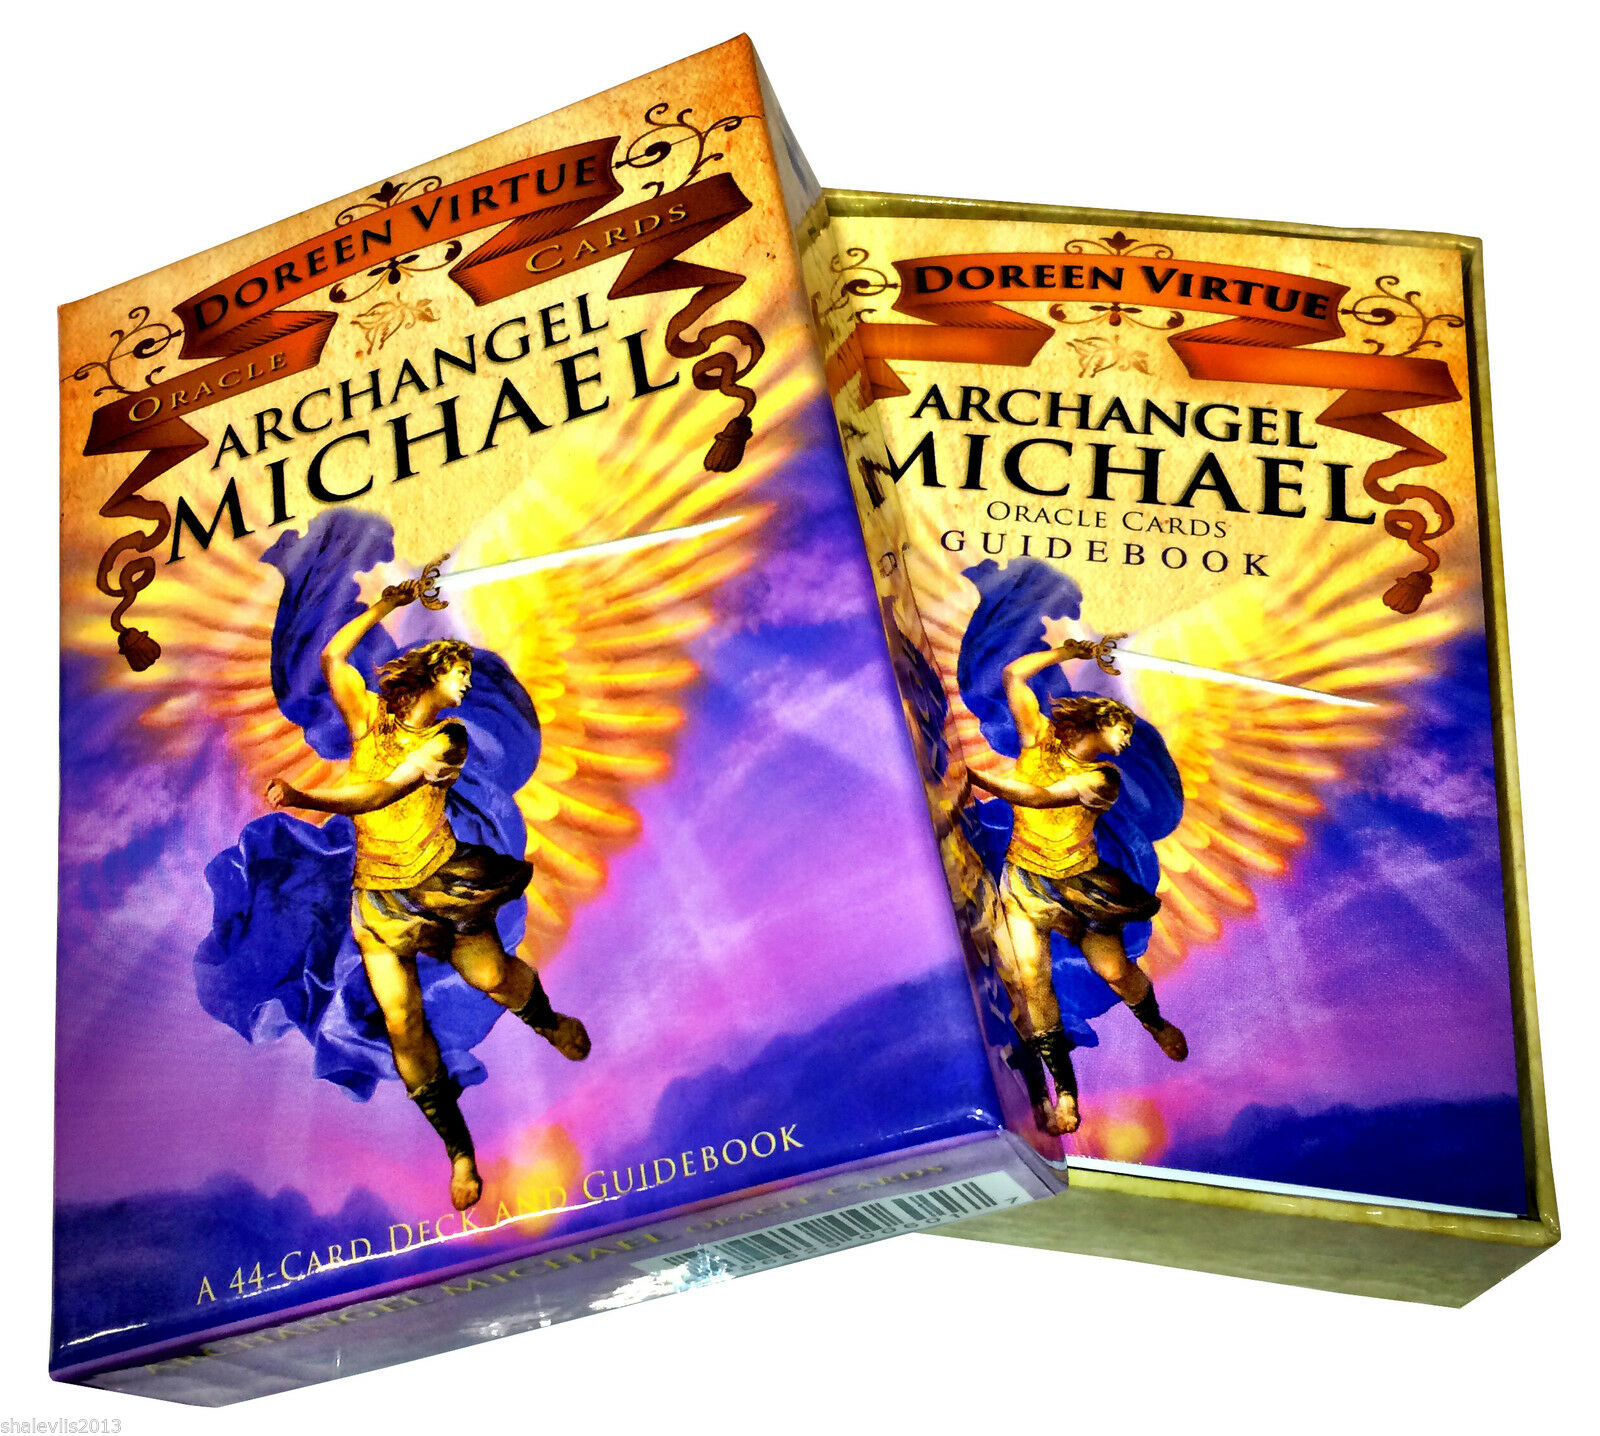 Archangel-Michael-Oracle-Cards-Tarot-Deck-Booklet-_57